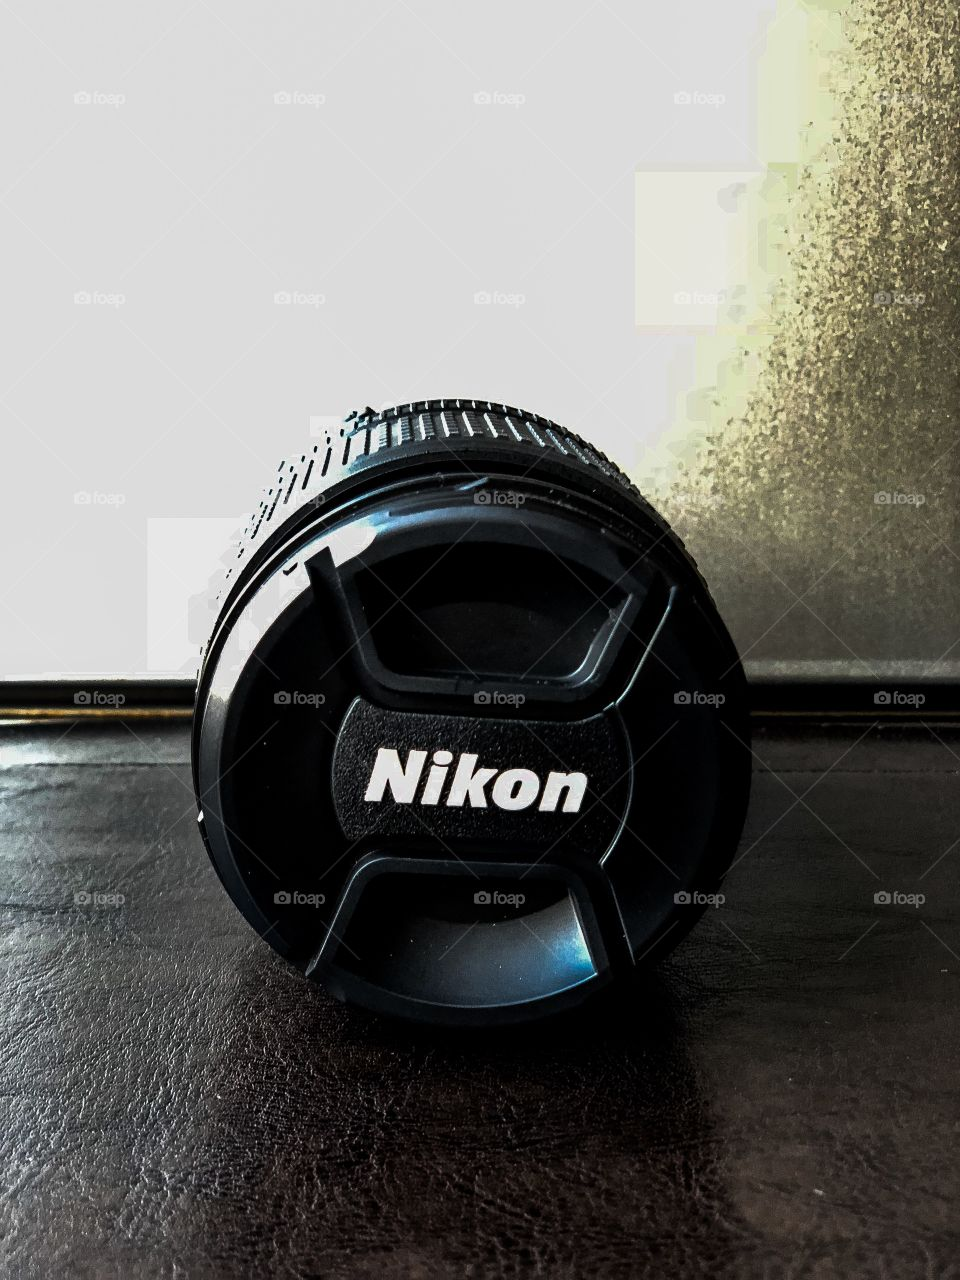 If there is one thing I highly recommend it is making sure you own a Nikon sometime in your life📸